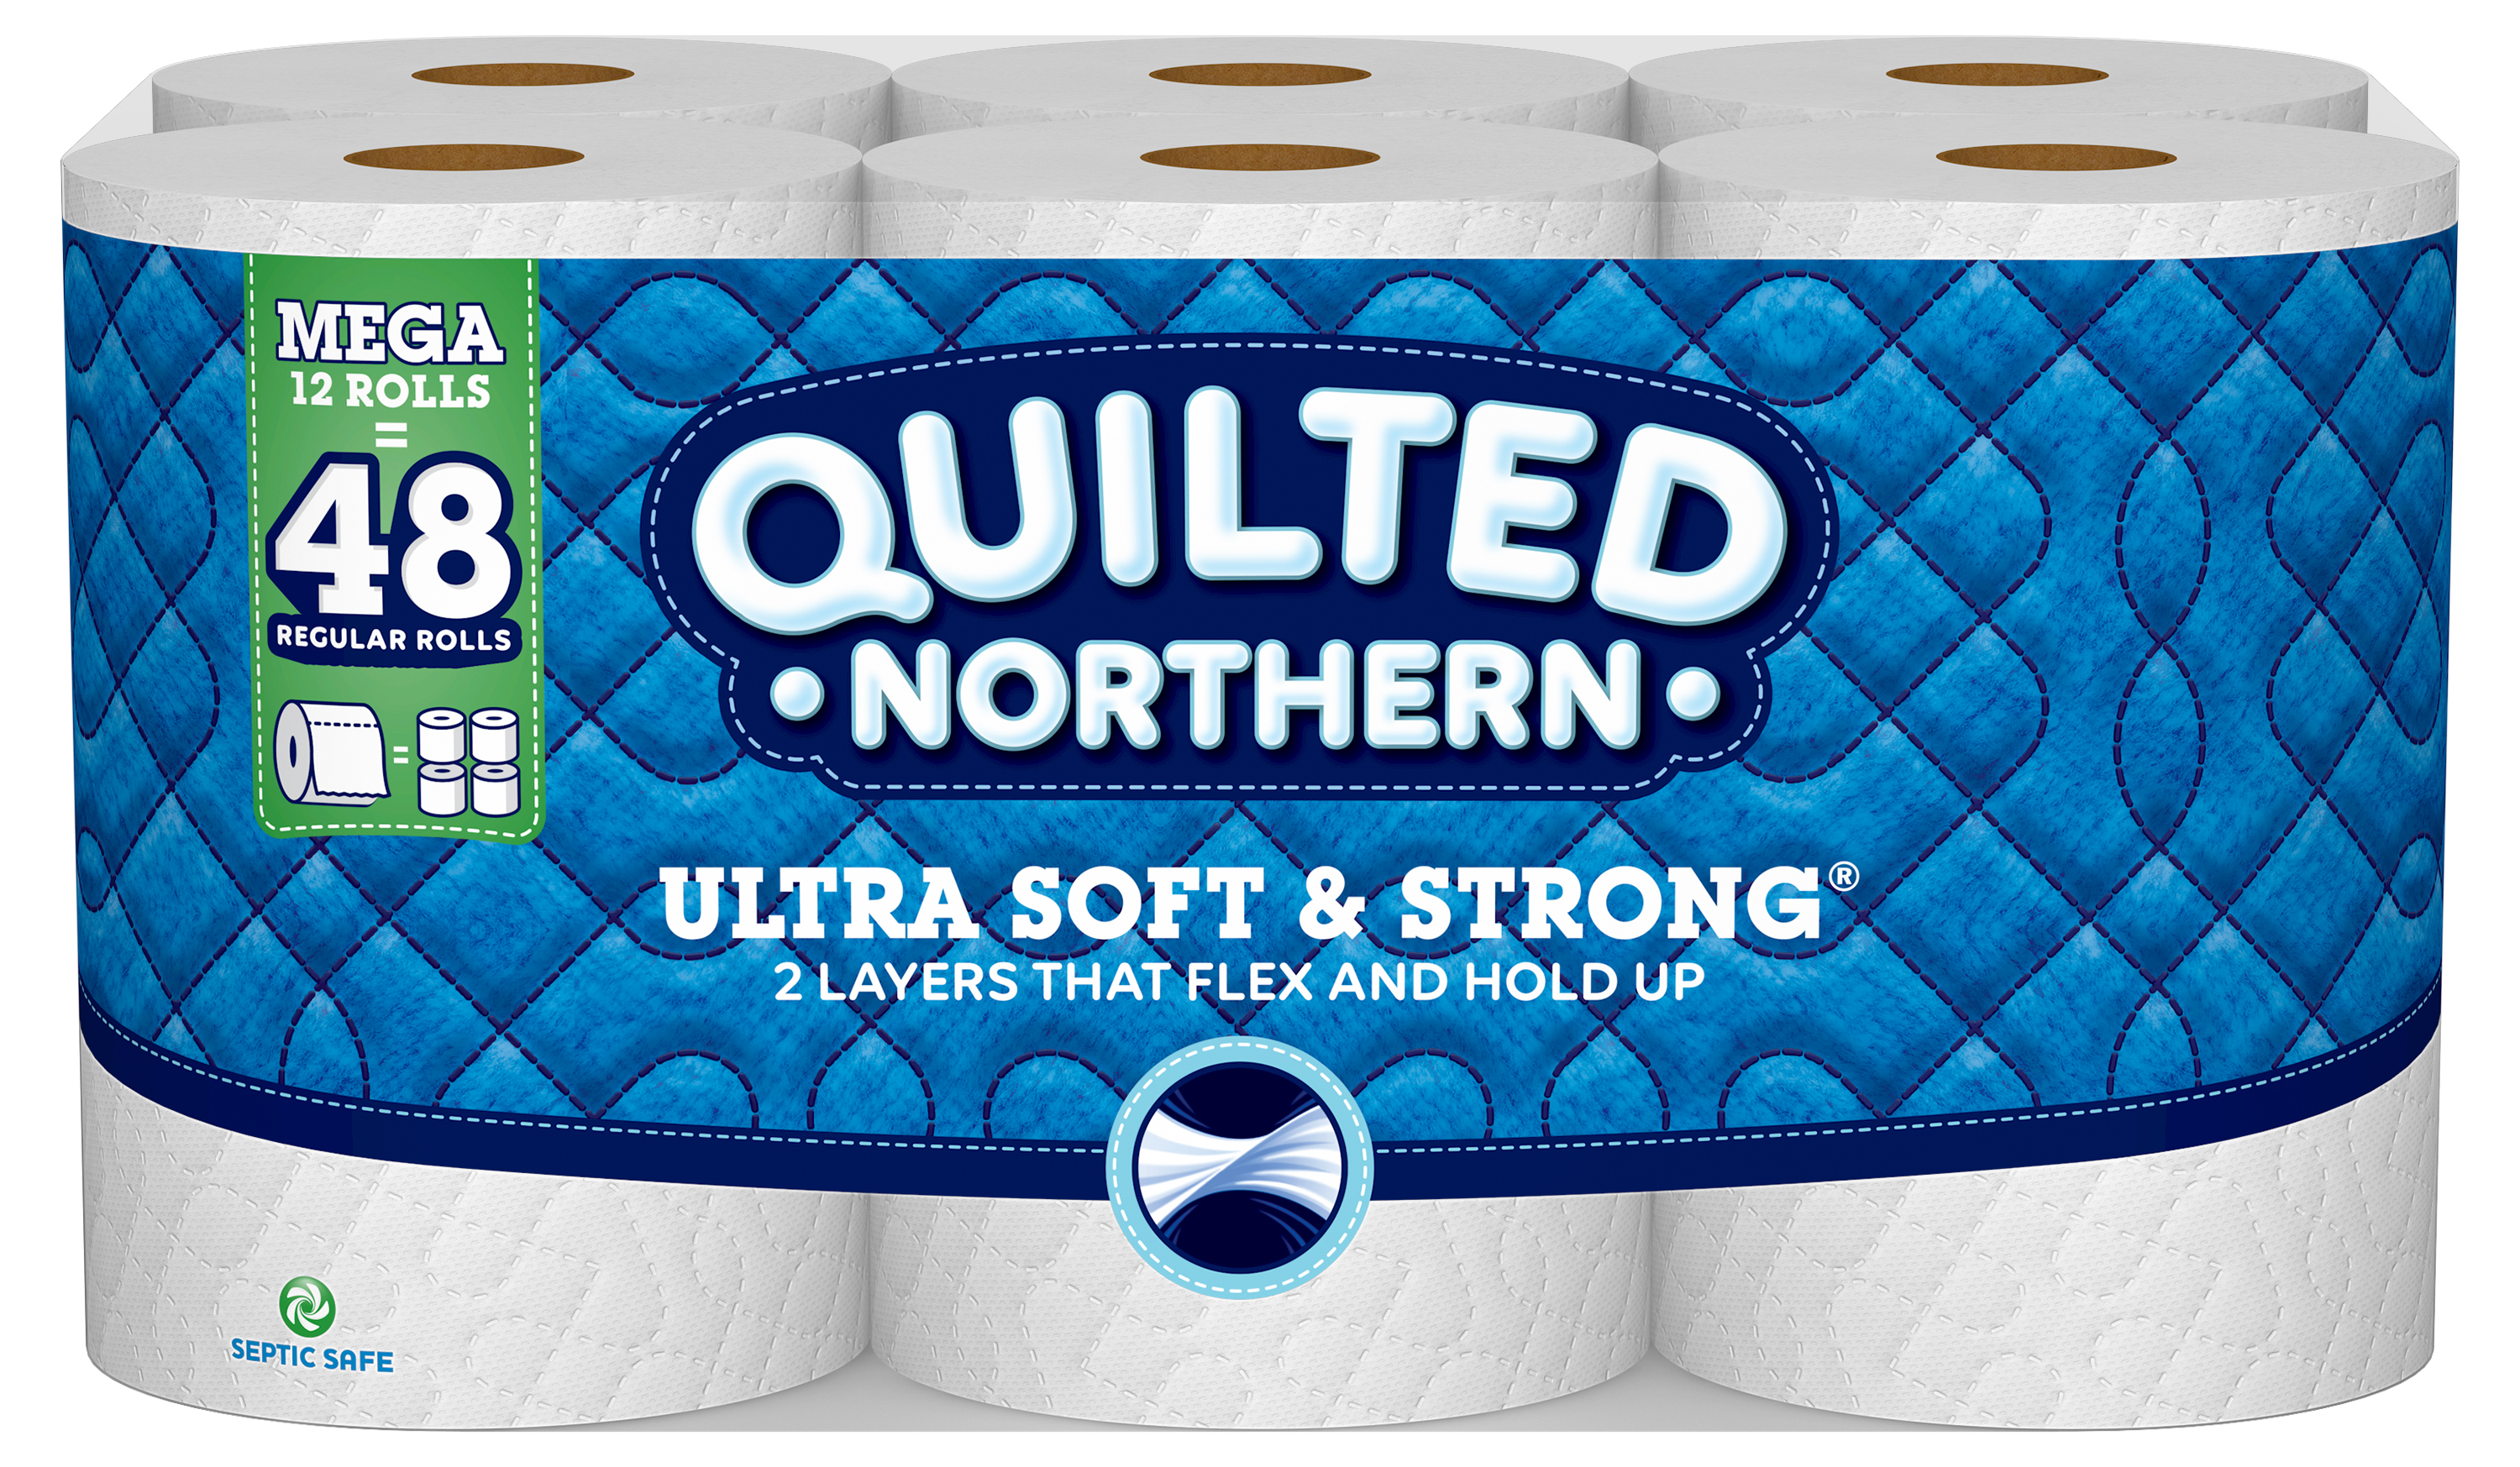 Quilted Northern Ultra Soft & Strong Toilet Paper, 12 Mega Rolls by GP Consumer Products Operations, Lp